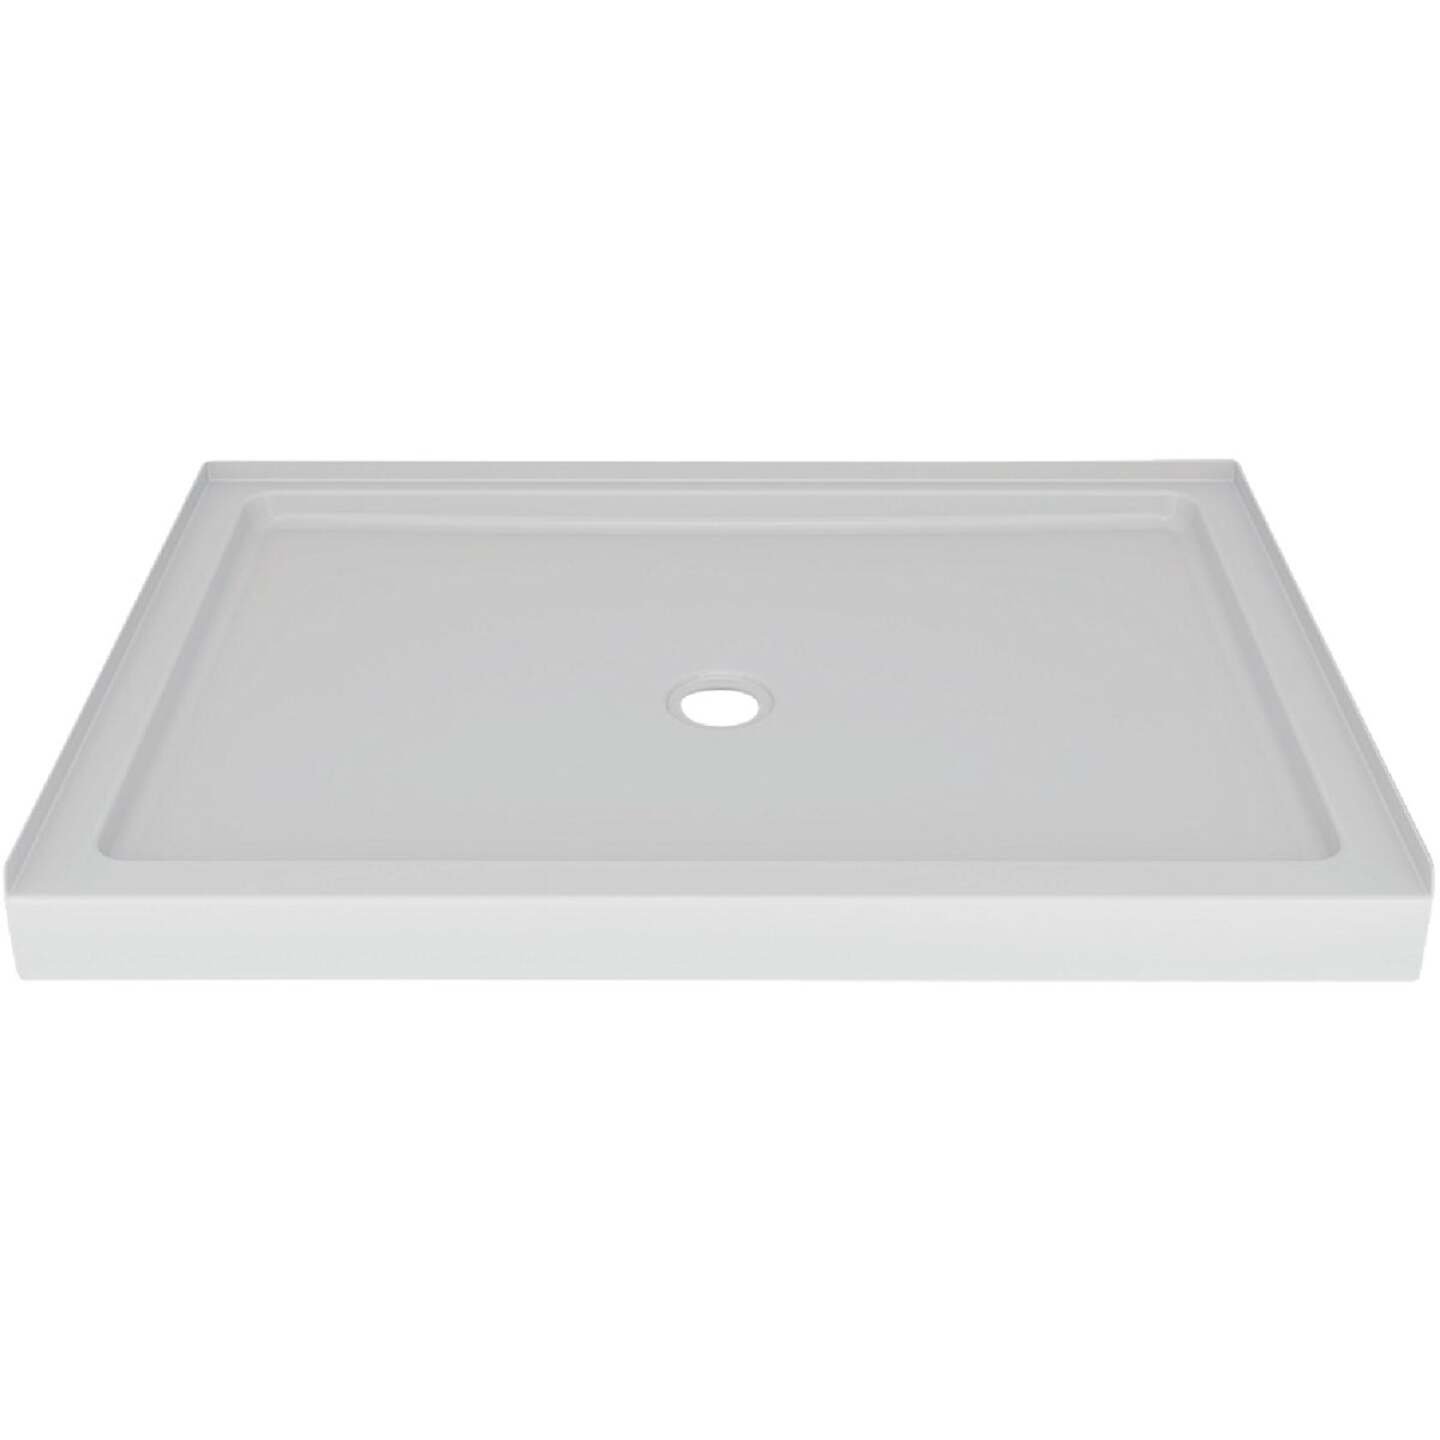 Delta Laurel 48 In. L x 34 In. D Center Drain Shower Floor & Base in White Image 1